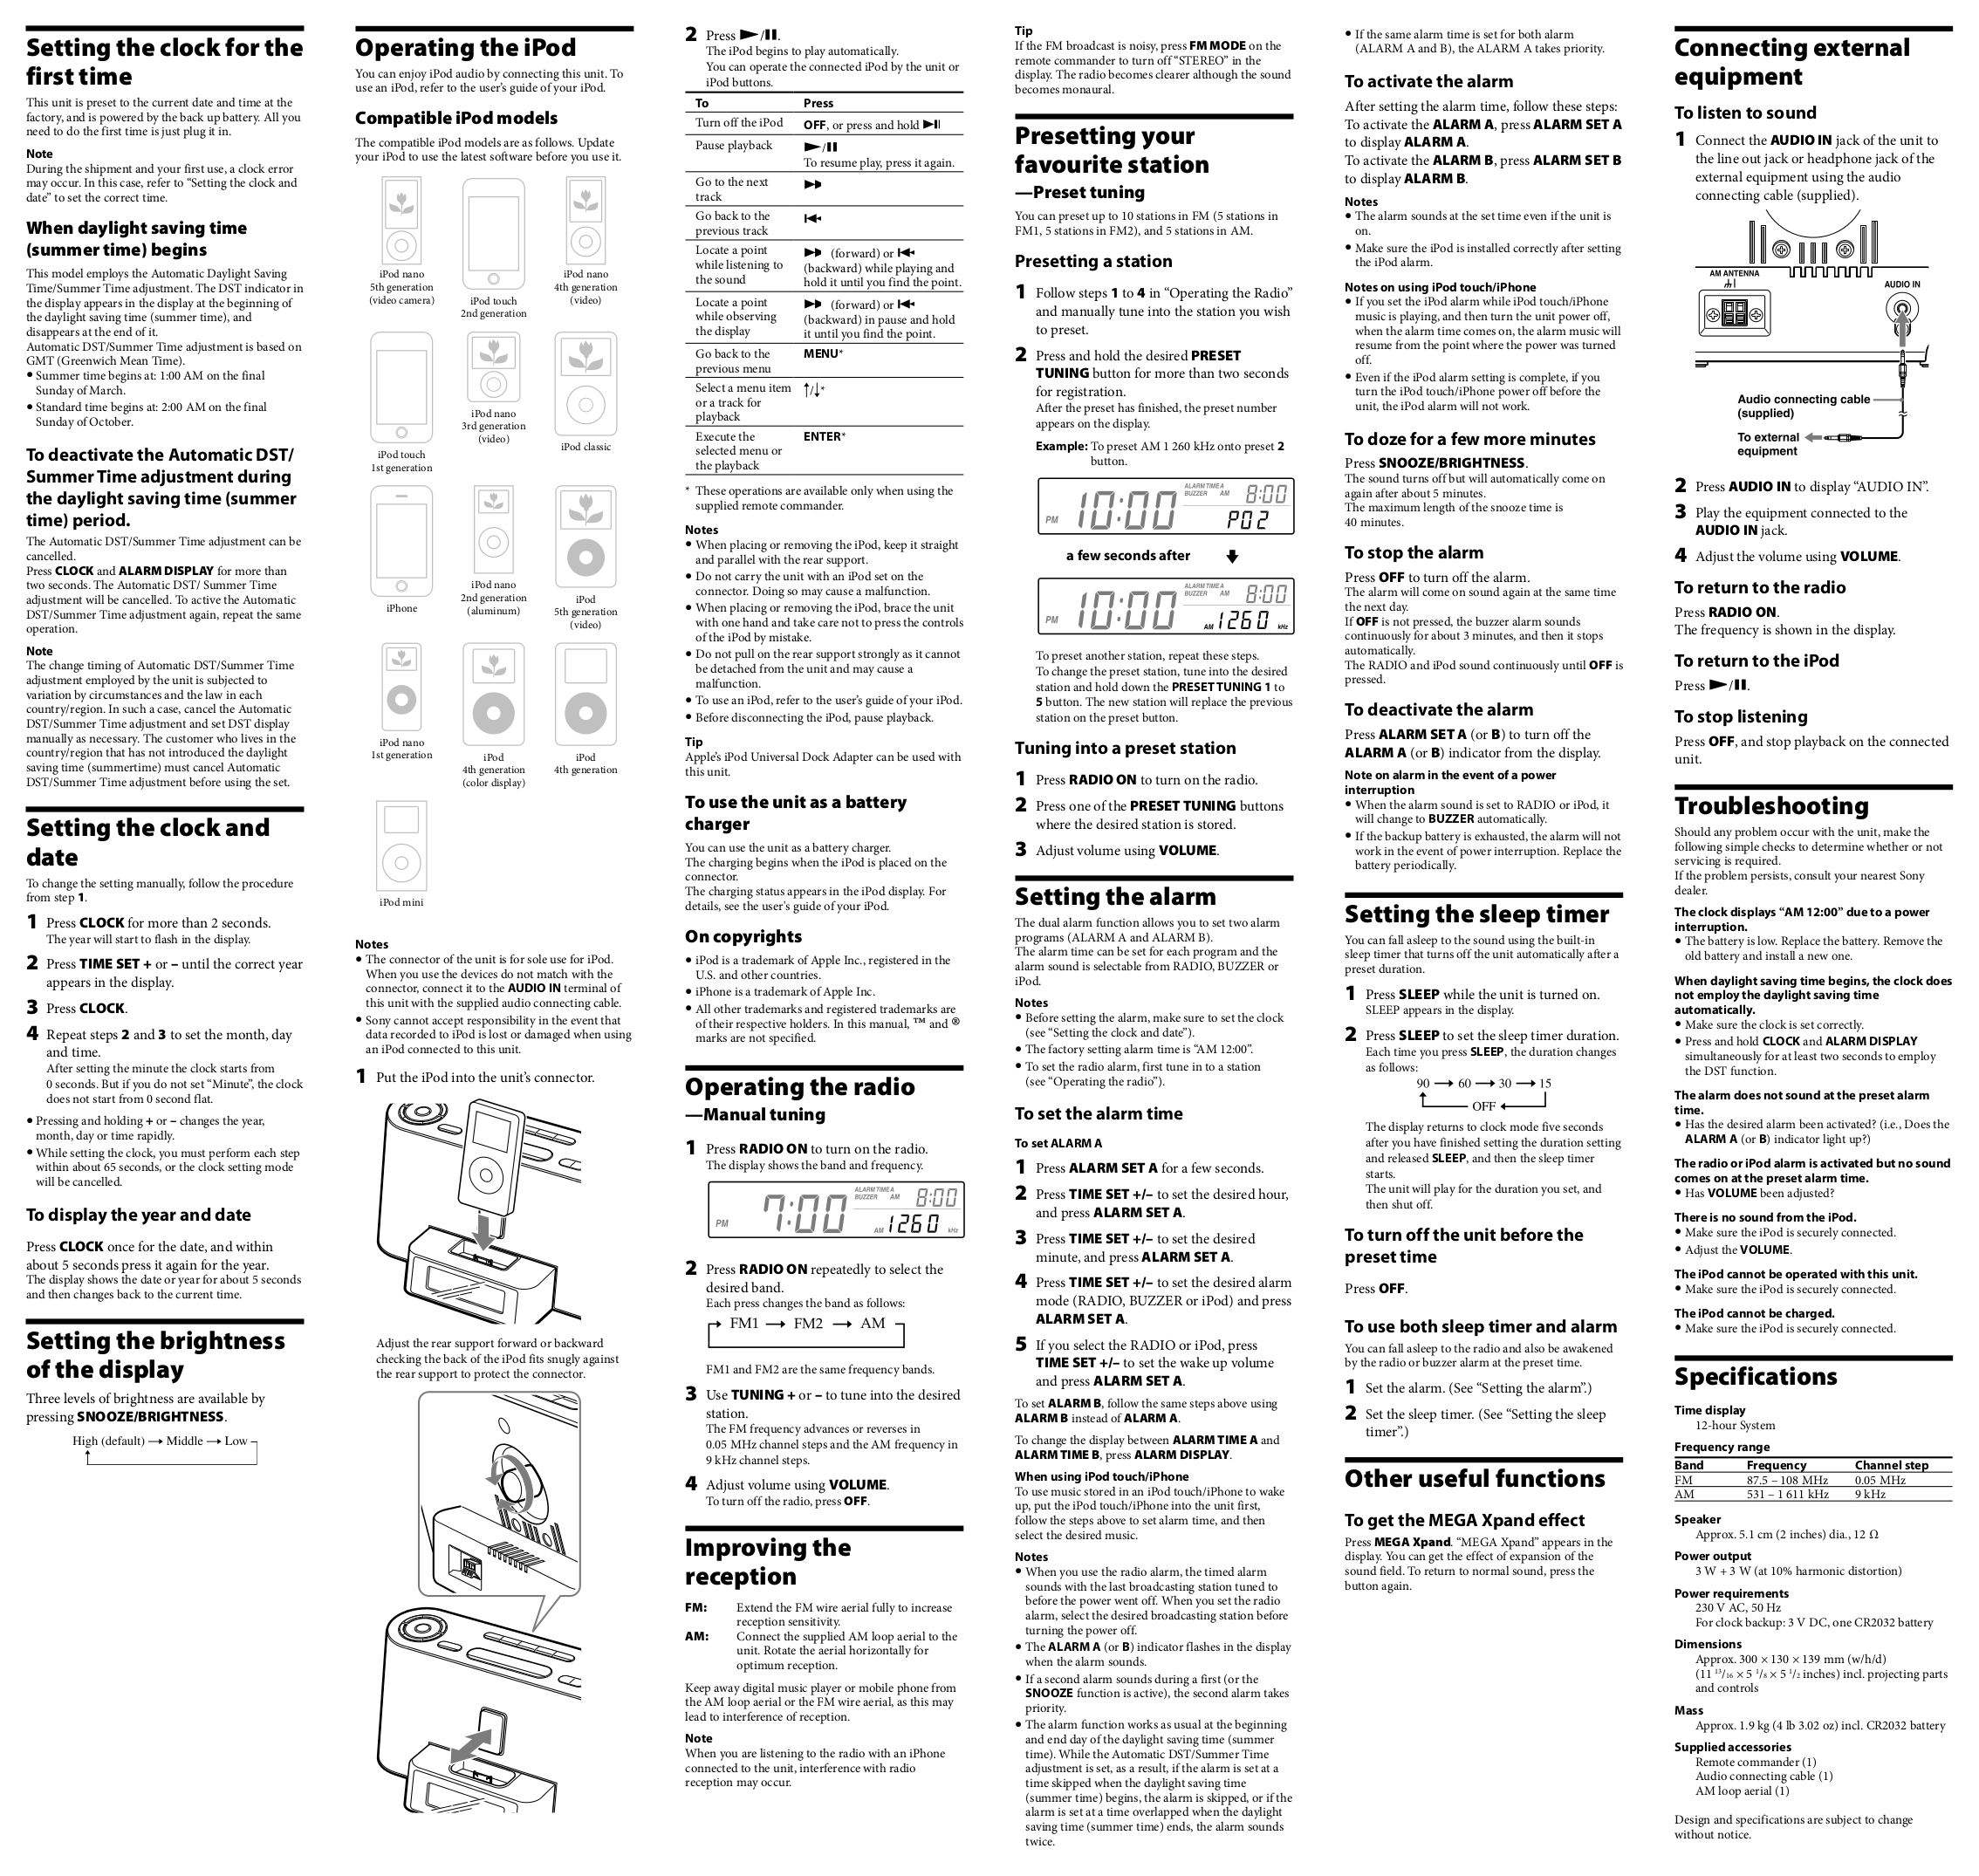 PDF manual for Sony Radio ICF-36